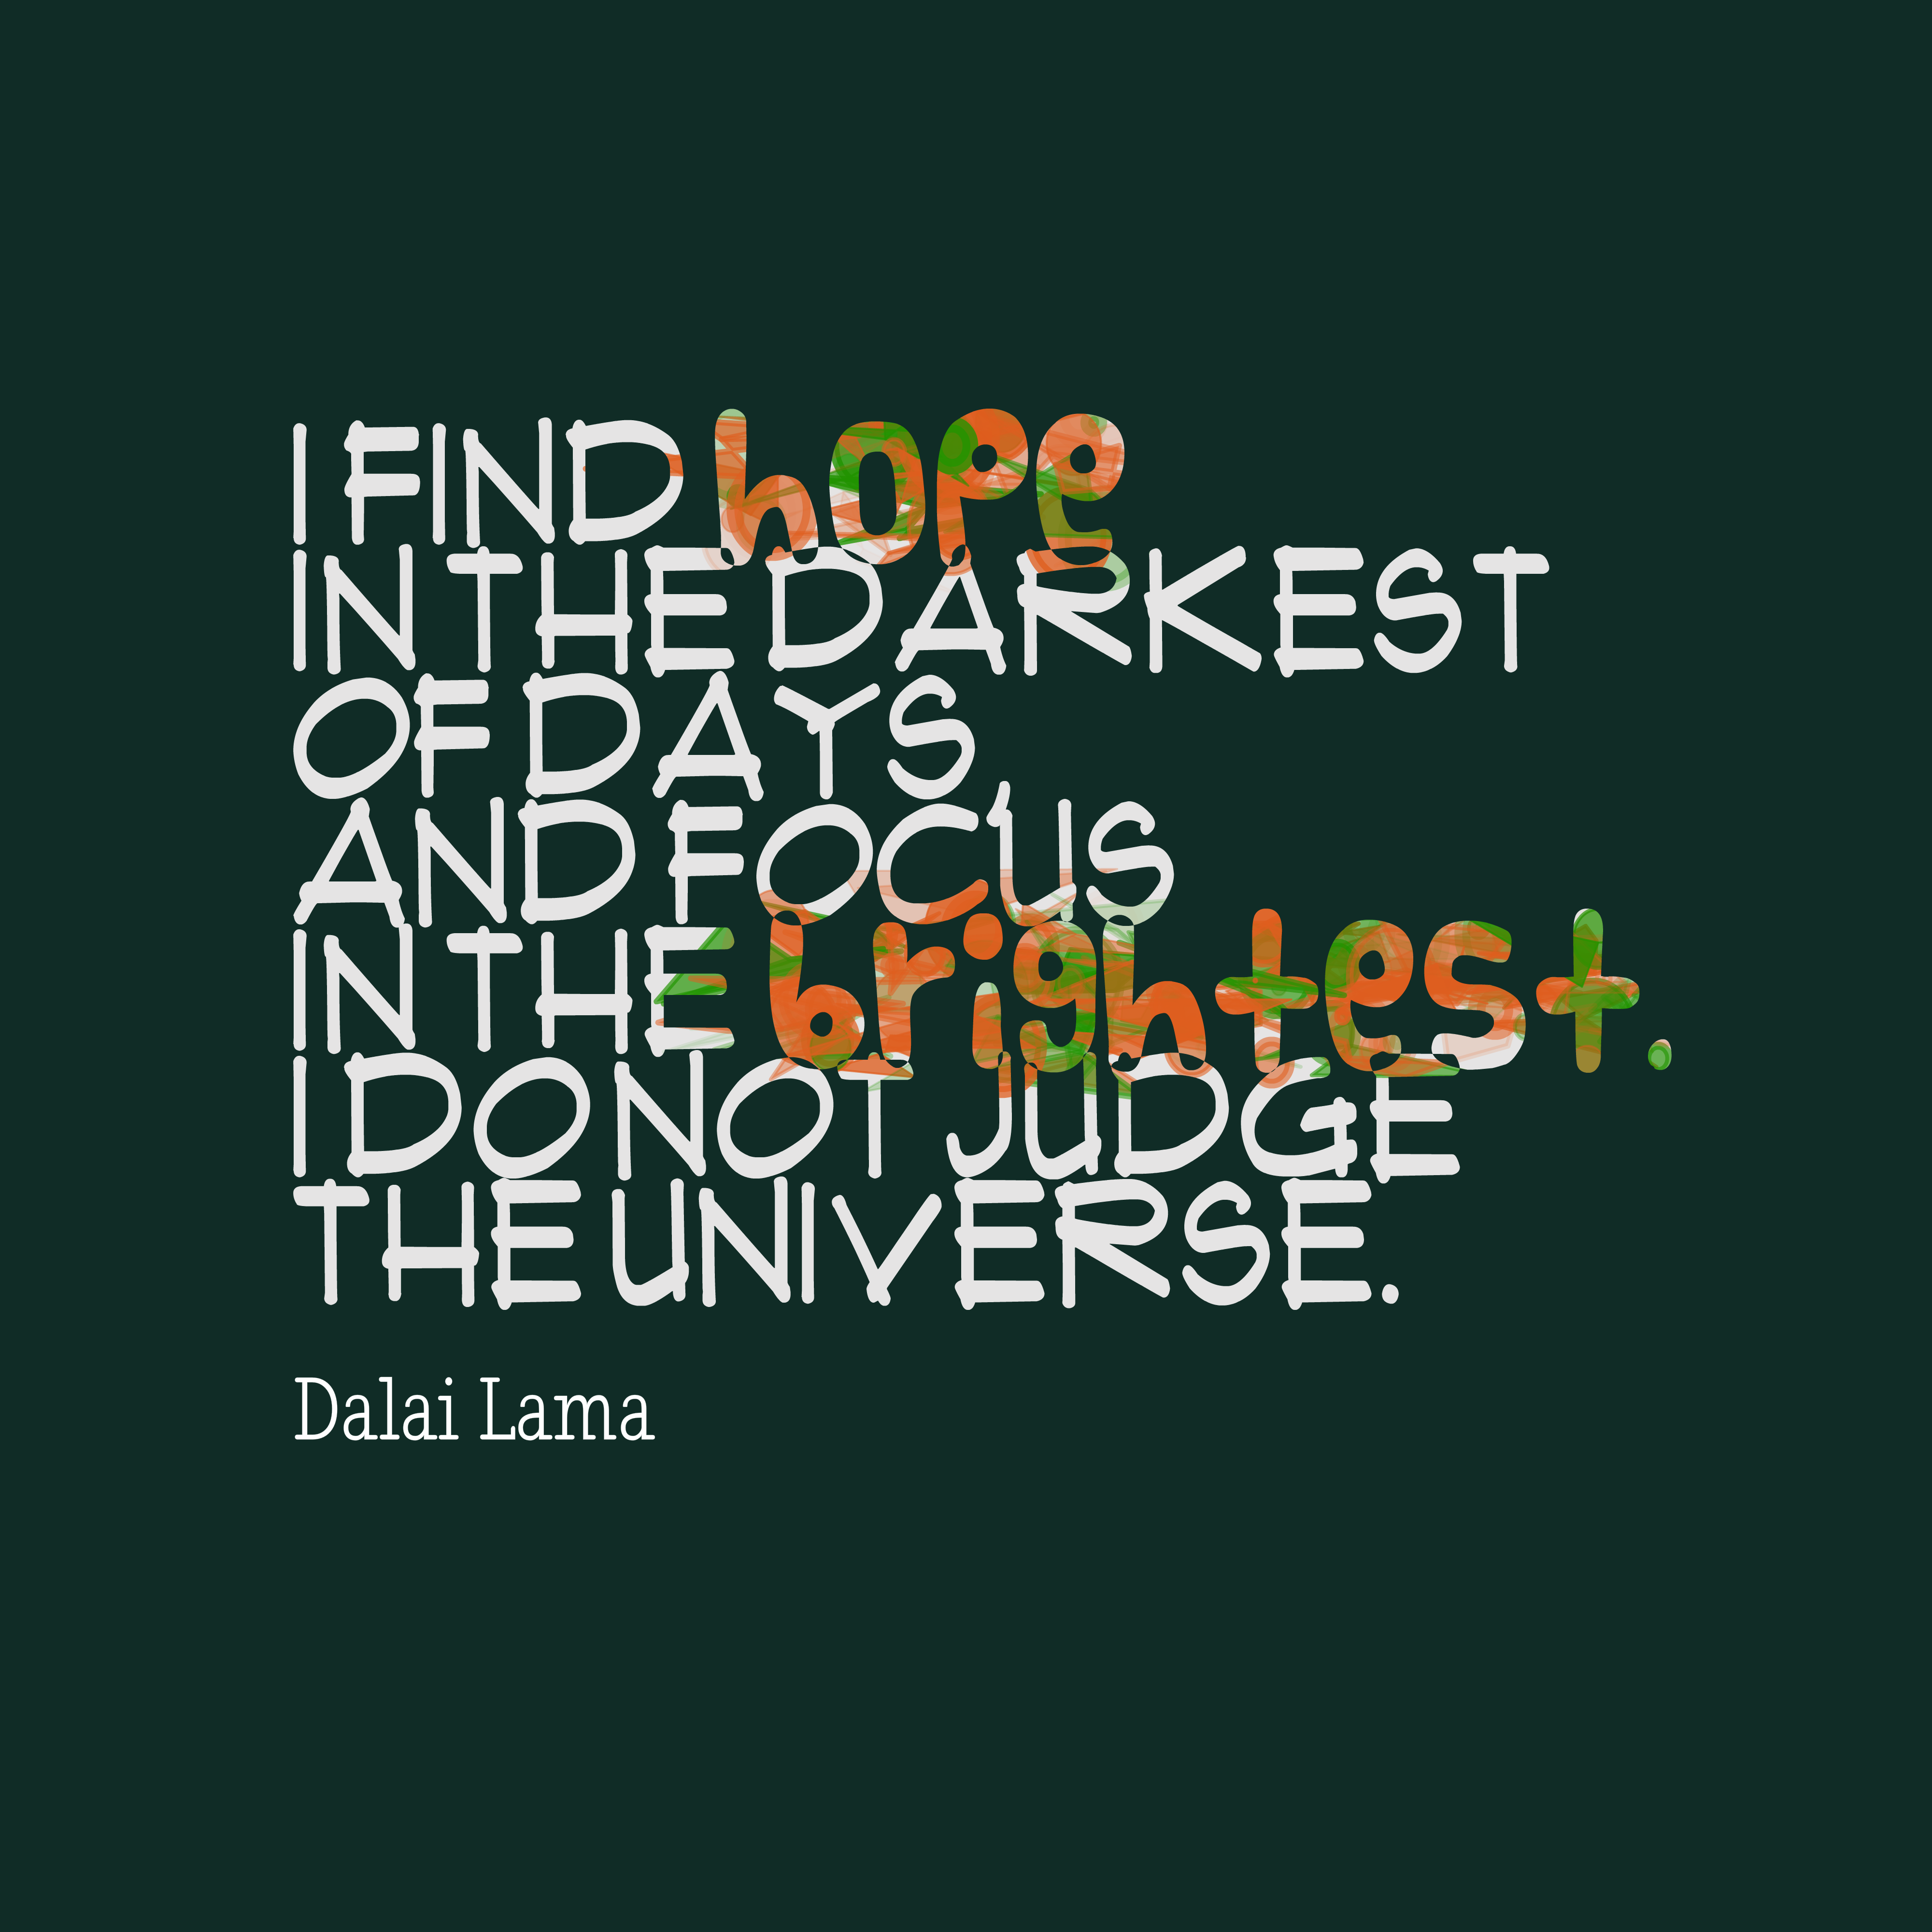 Quotes image of I find hope in the darkest of days, and focus in the brightest. I do not judge the universe.